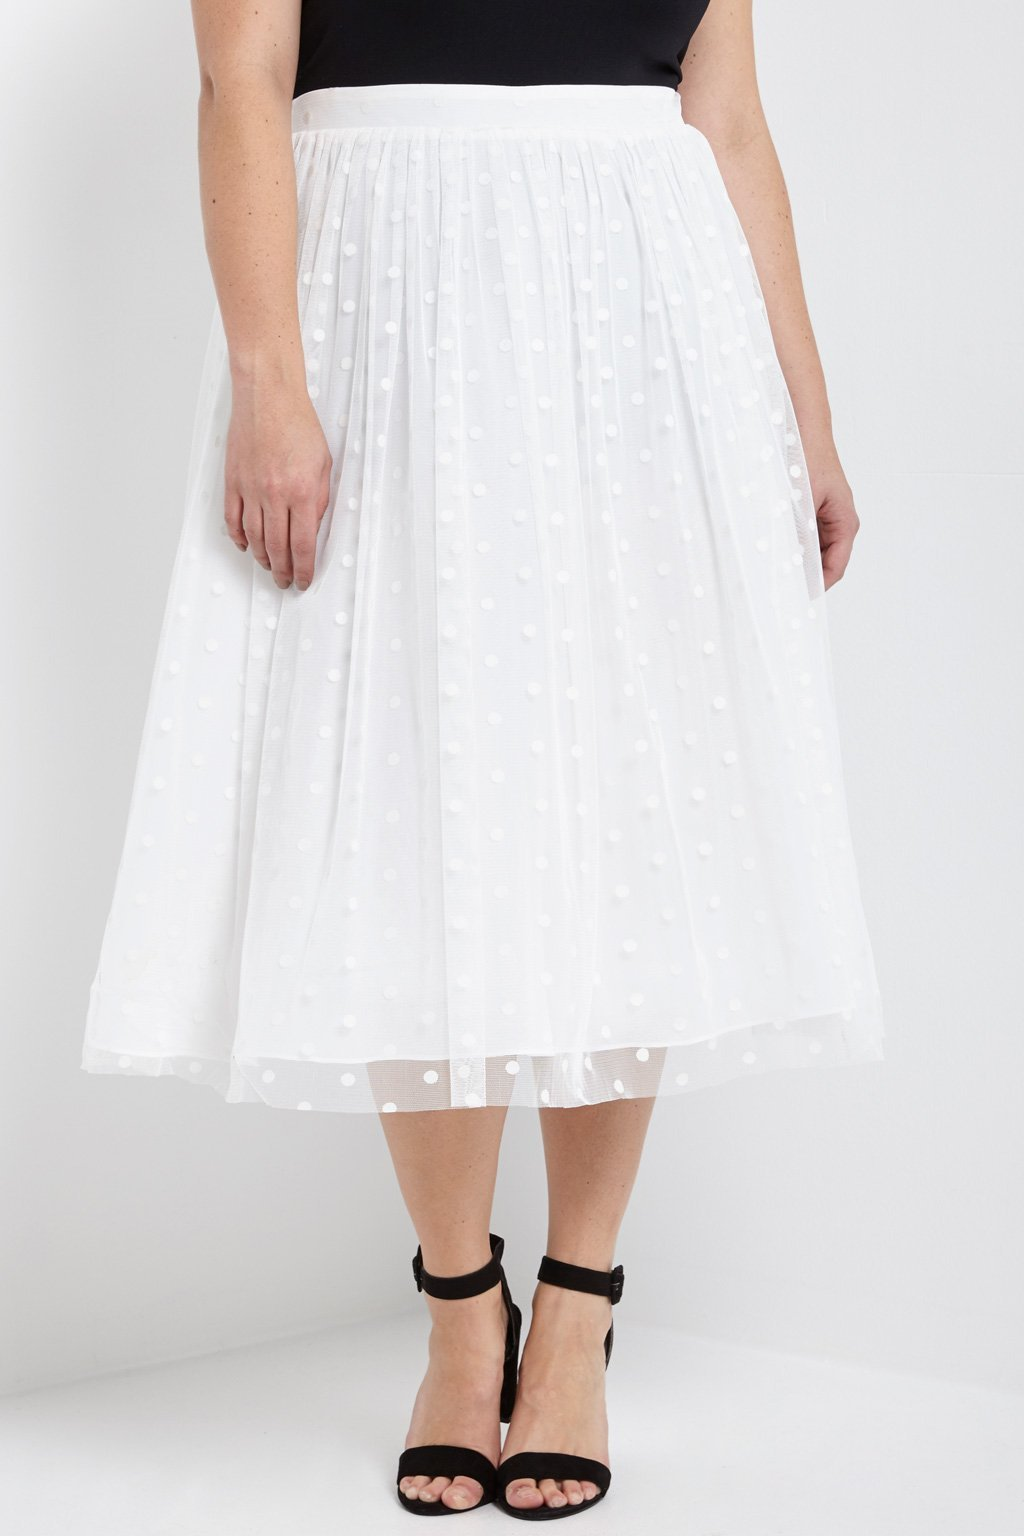 Poshsquare Plus 1XL / White Polkadot Tulle Midi Skirt Plus Size